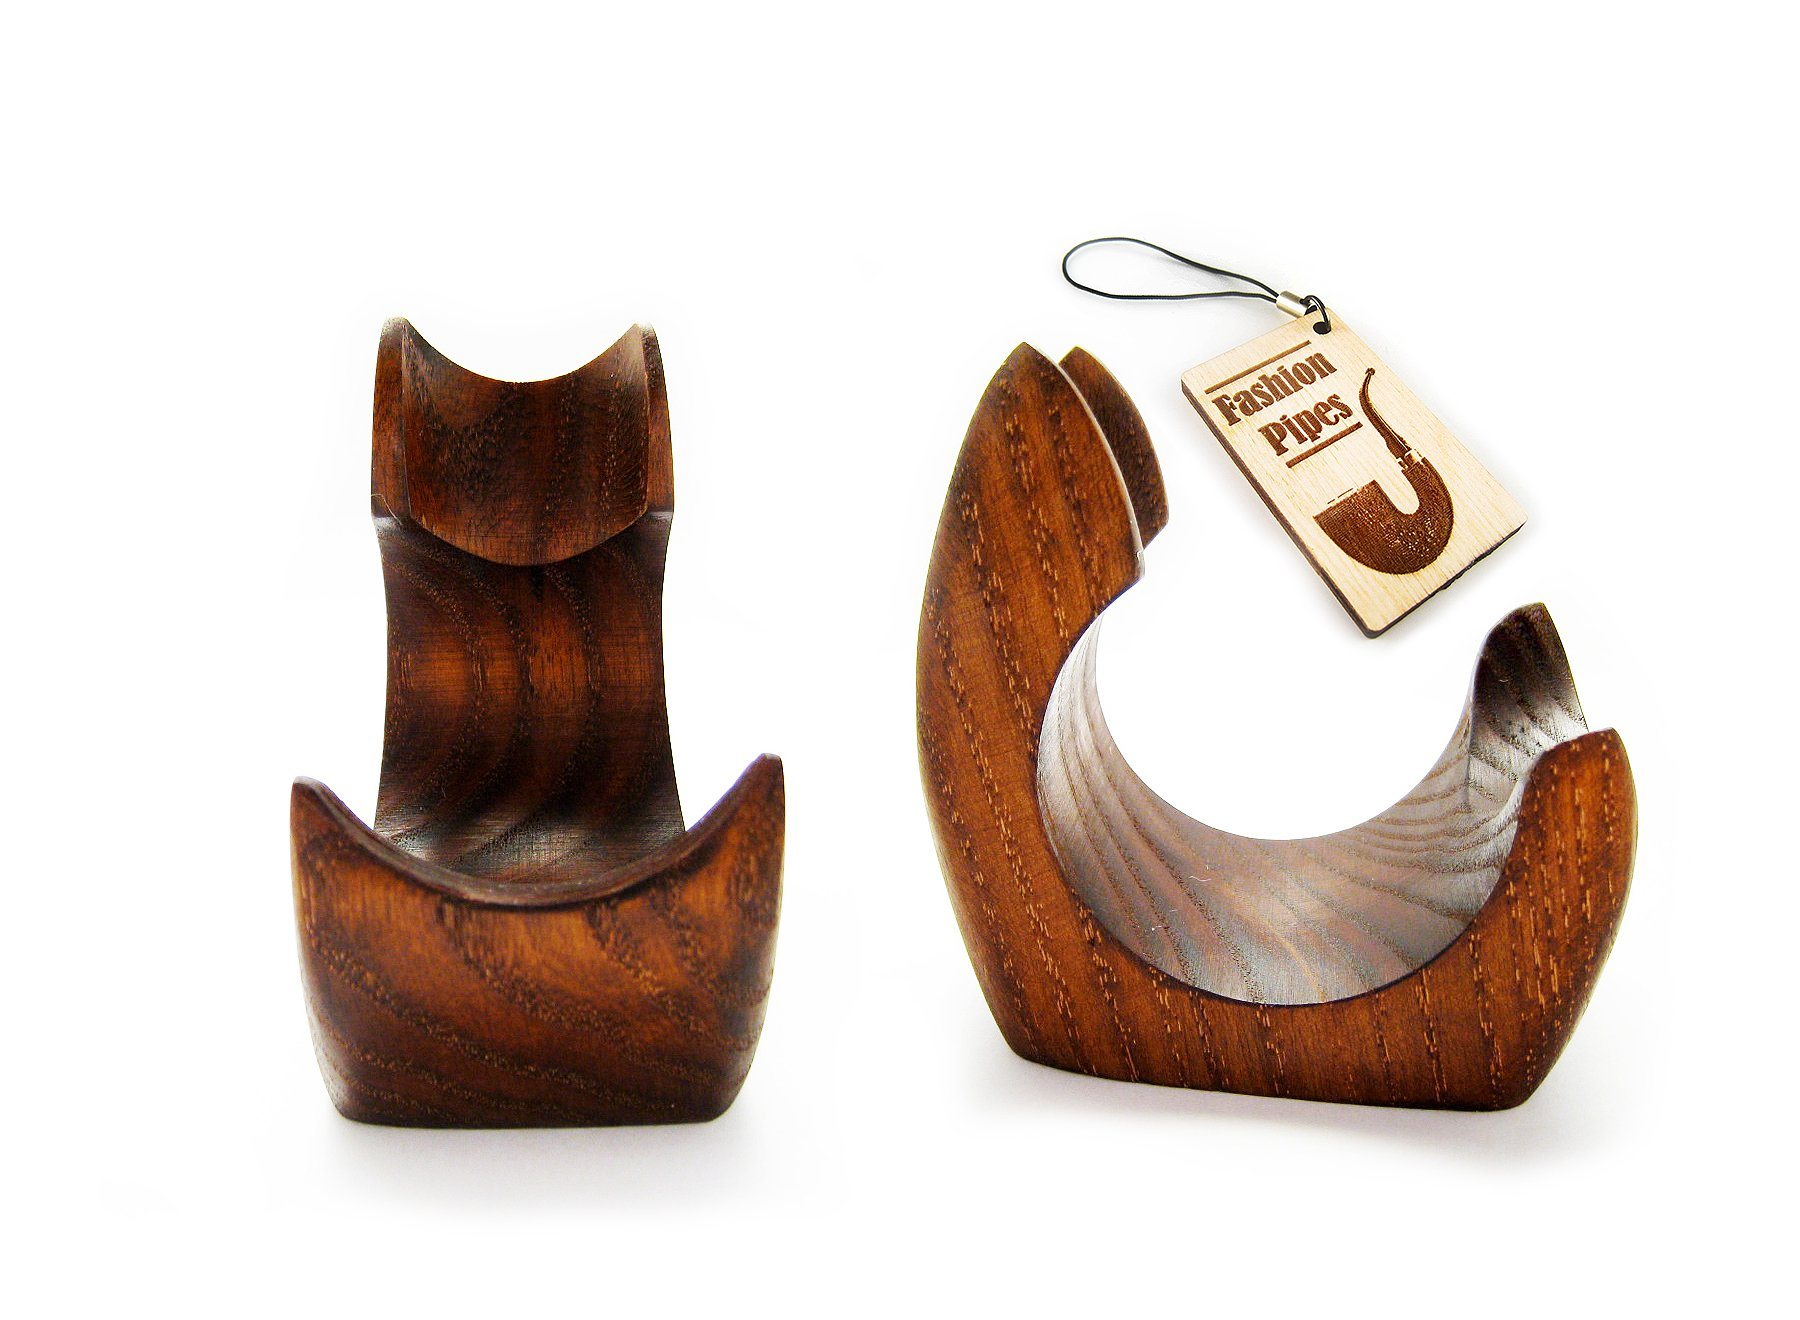 New Wooden Pipe Stand Rack Holder for Tobacco Pipe - Smoking Pipe. Handcrafted (1) by Fashion Pipes